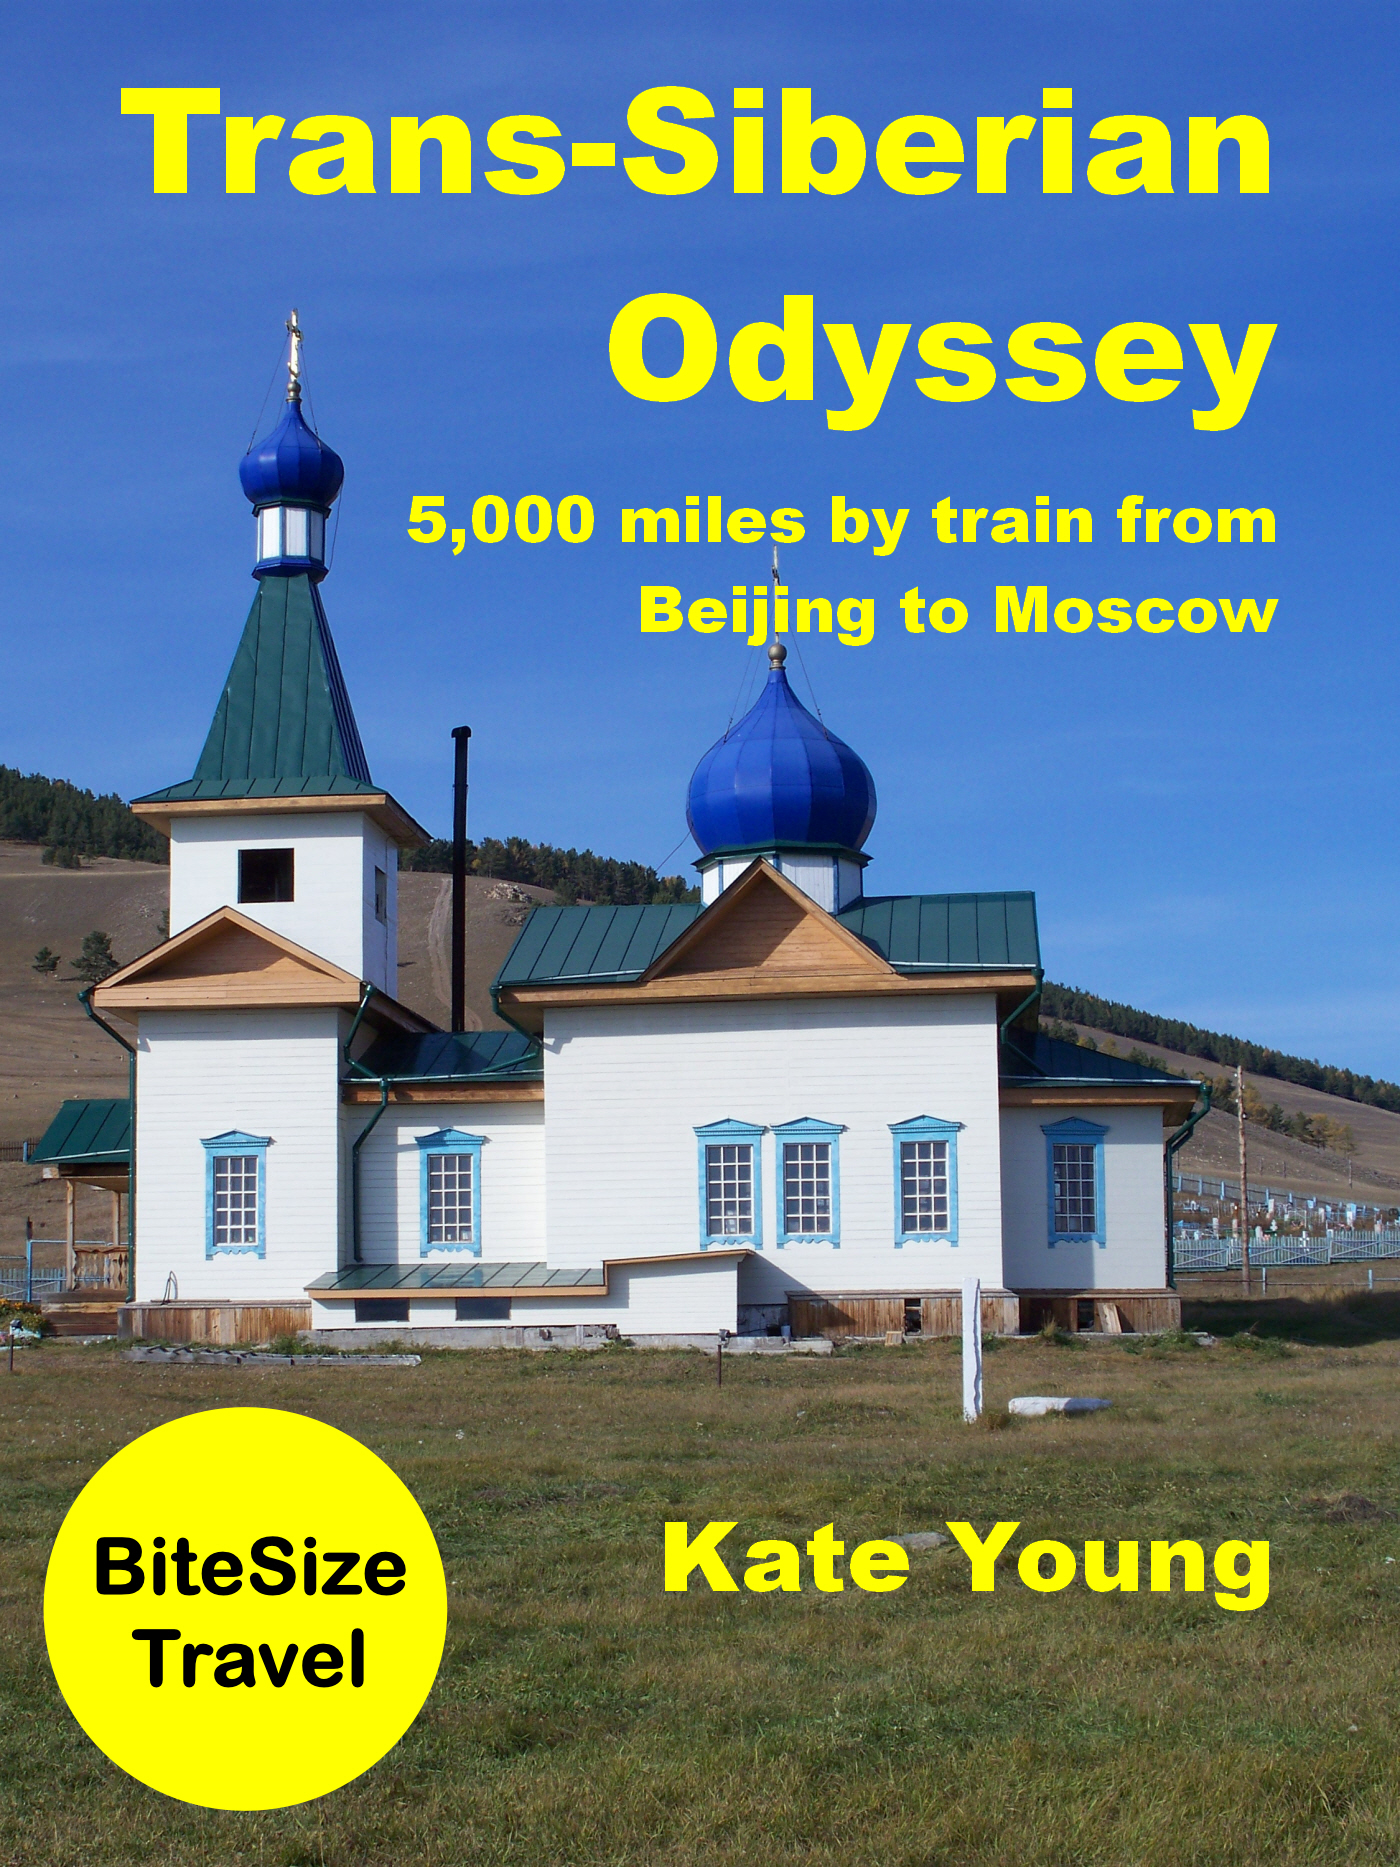 Trans-Siberian Odyssey: 5,000 miles by train from Beijing to Moscow